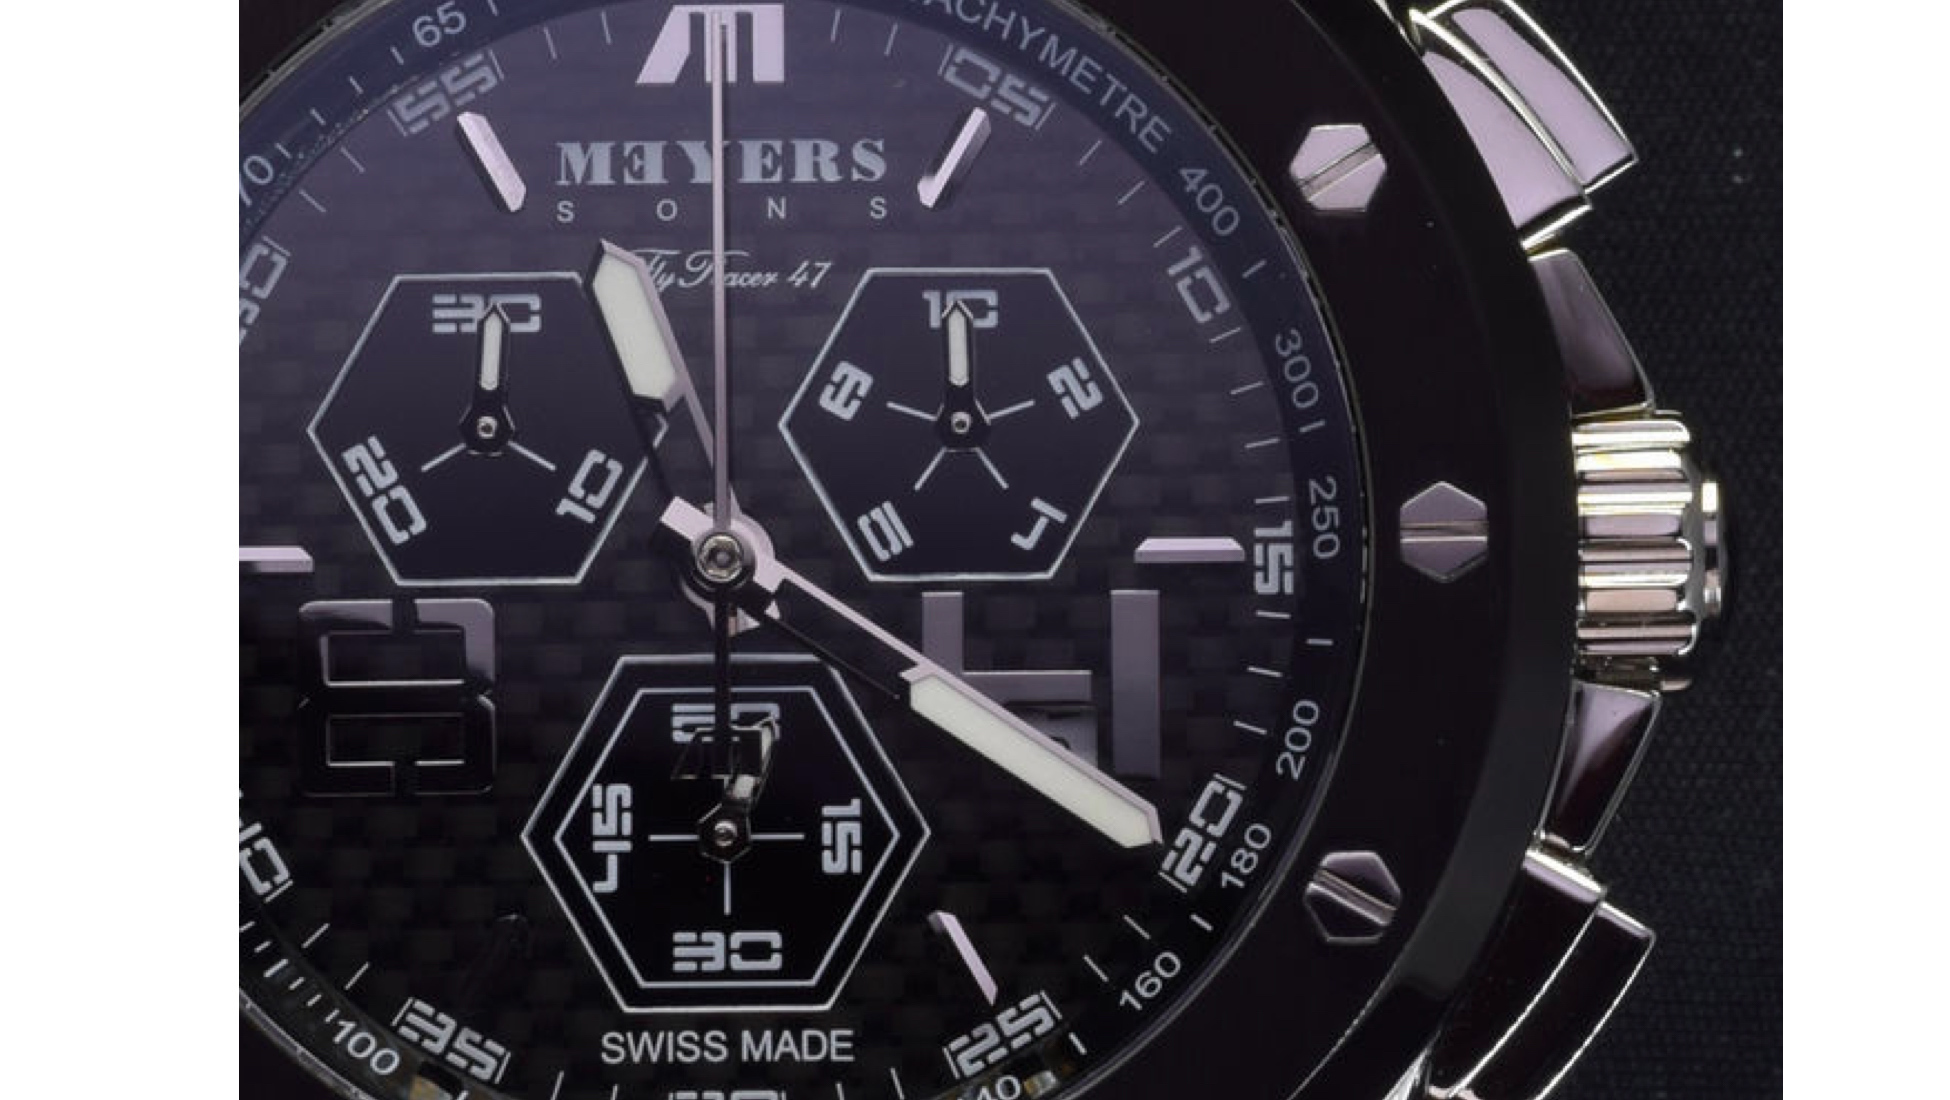 Chronograph Watches: An Experts Guide